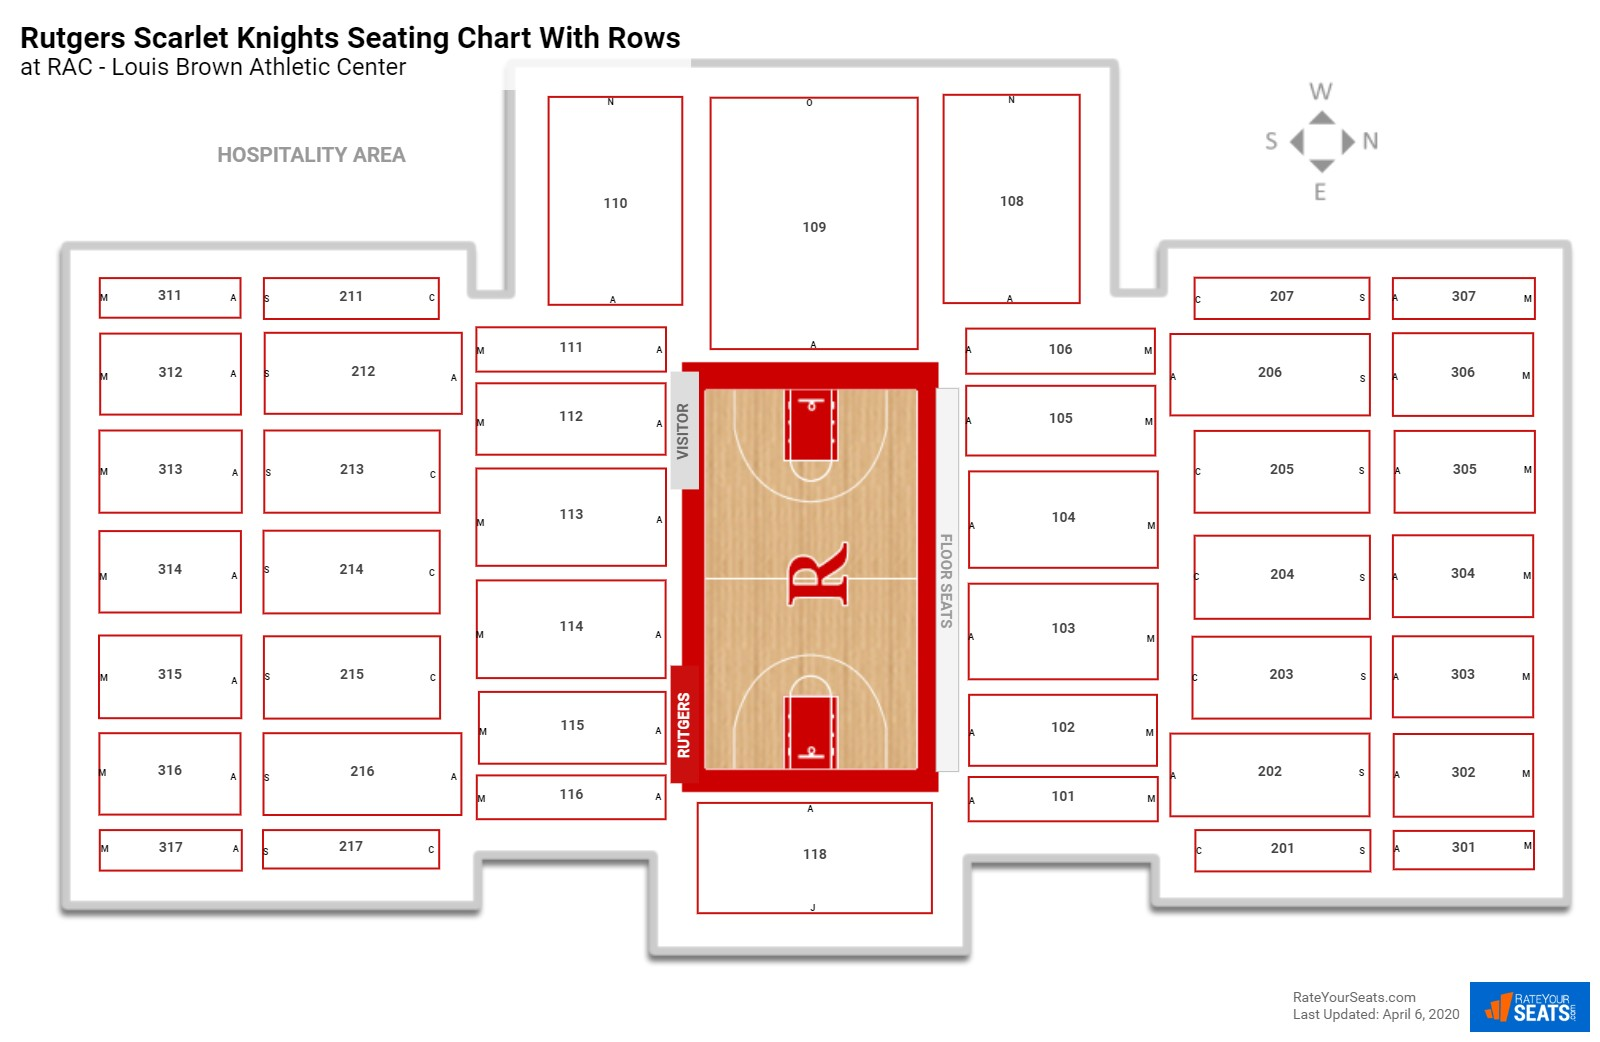 RAC - Louis Brown Athletic Center seating chart with rows